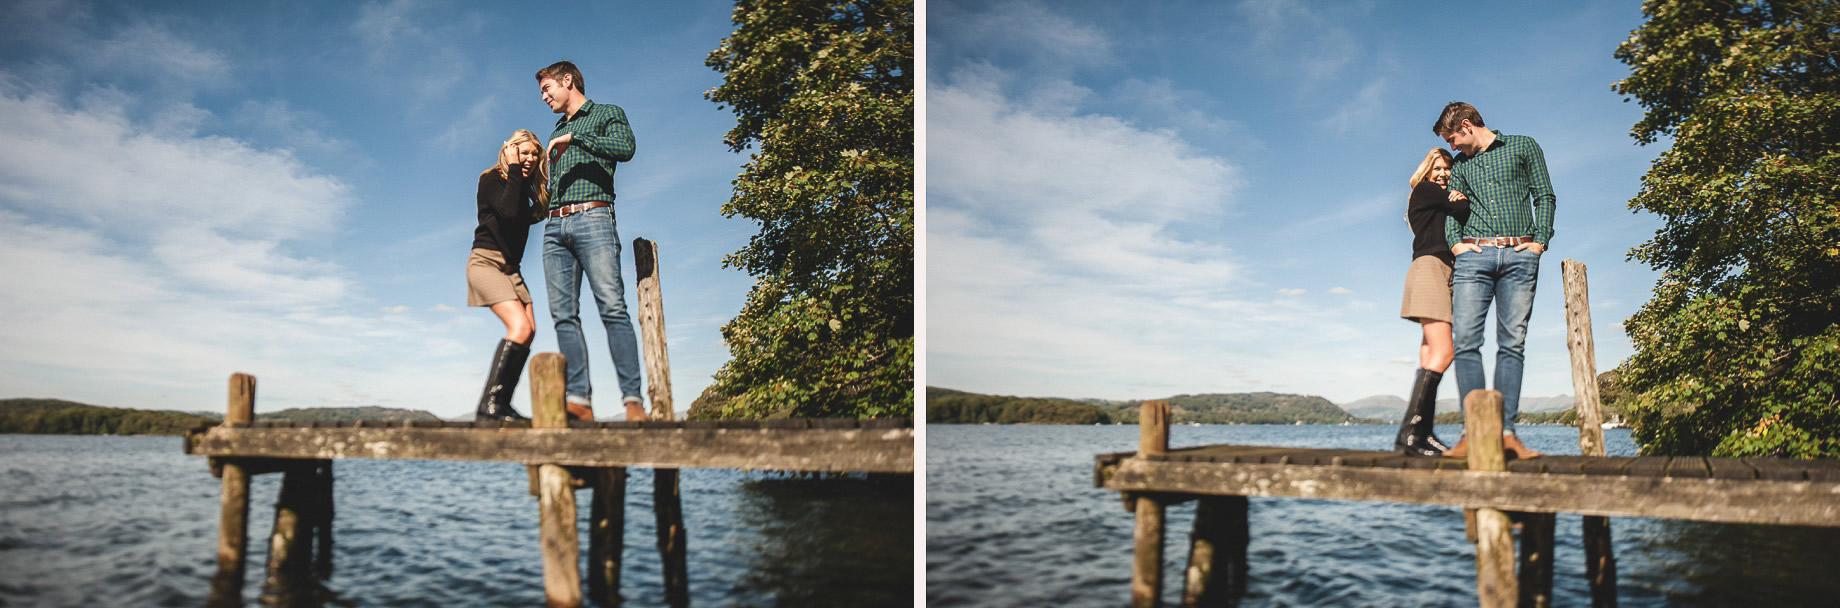 Becky and James' Pre-Wedding Shoot on Lake Windermere 007